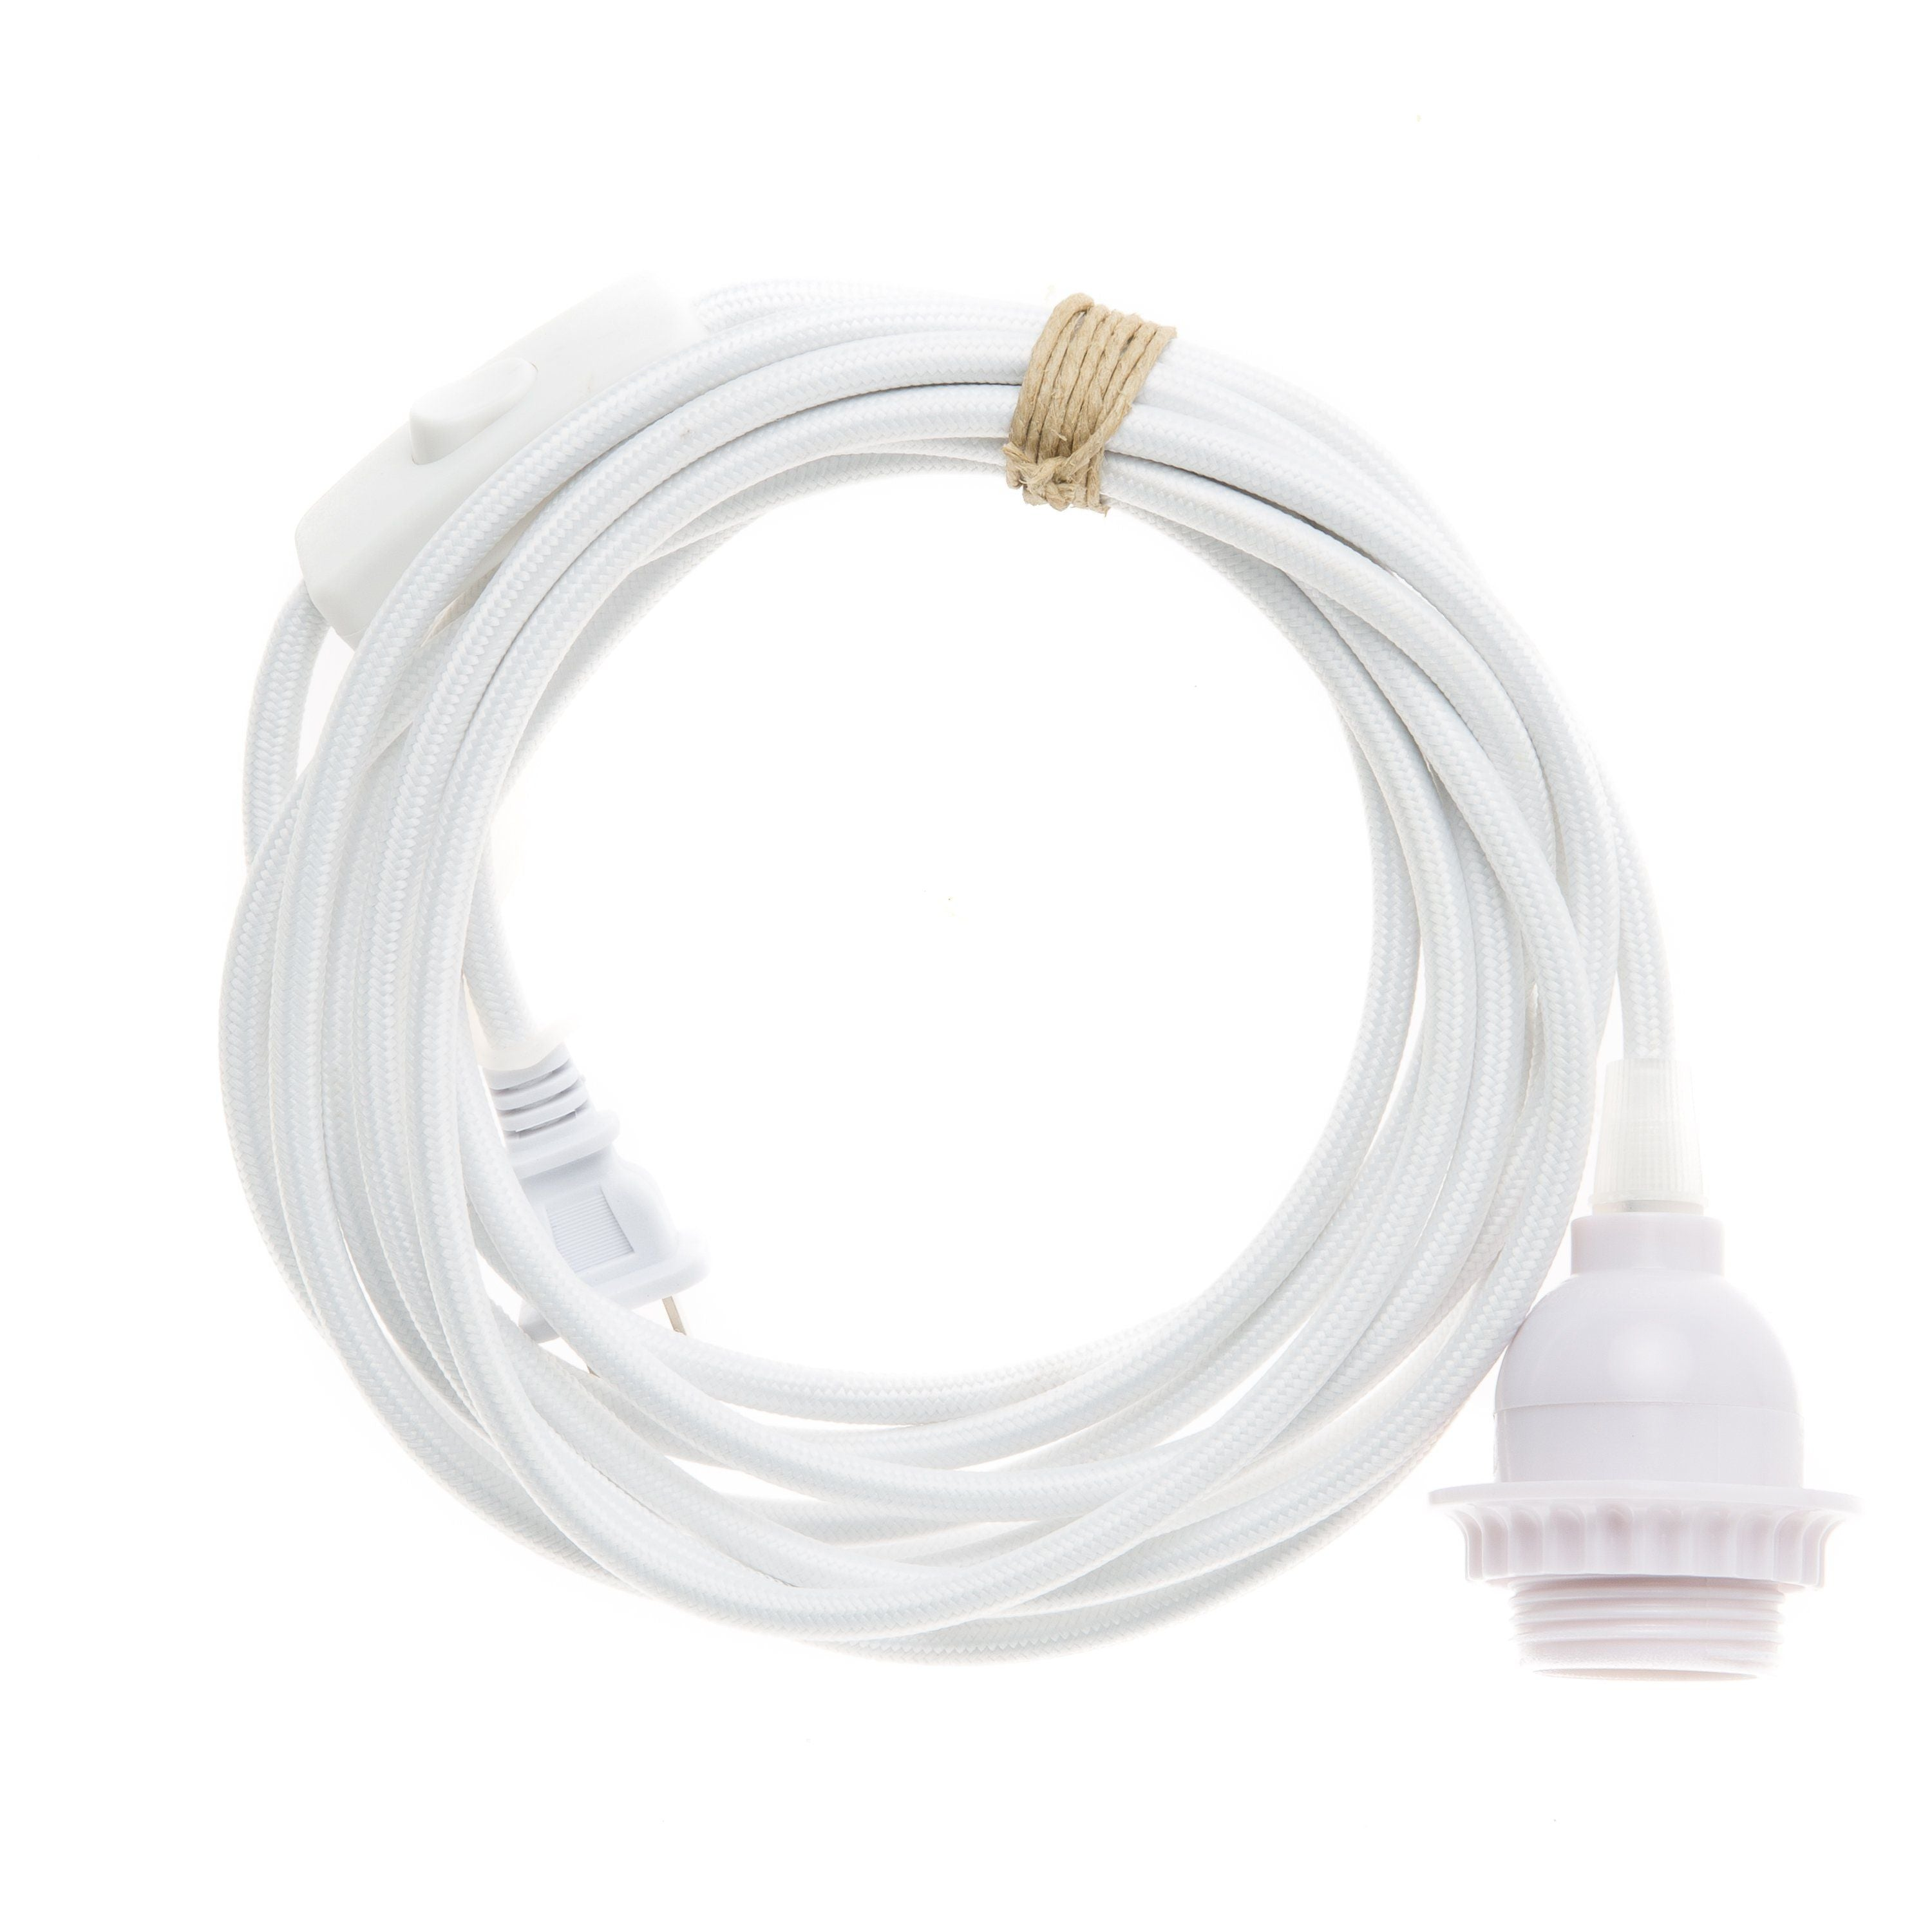 Plug In Pendant Light Cord Set Classic Color Company Wiring An Outlet With Red Black And White Wires